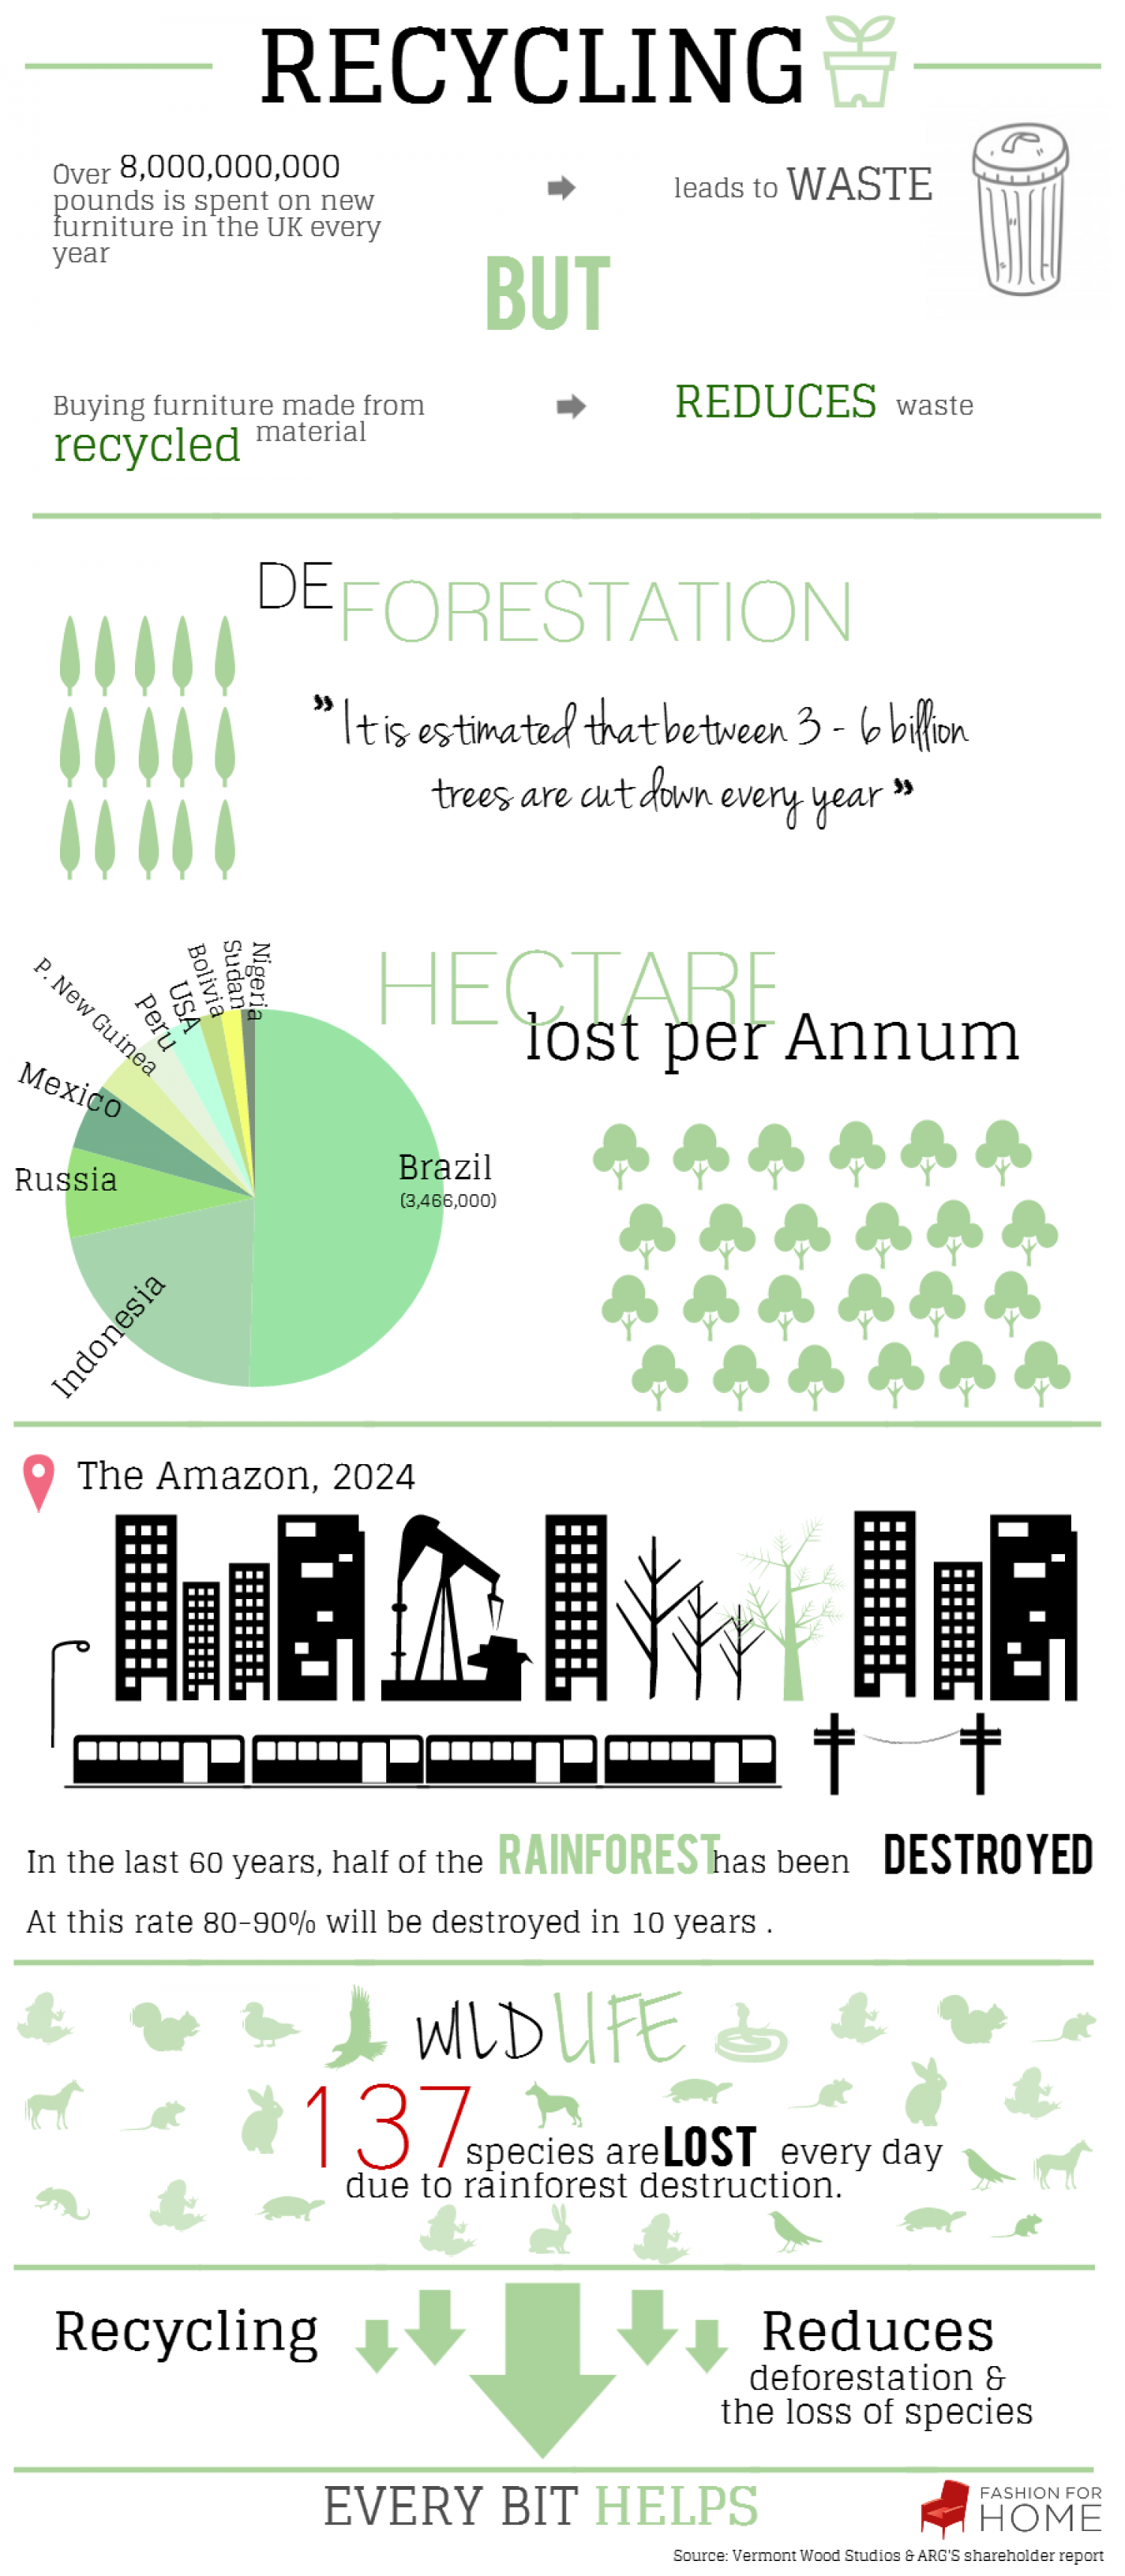 Recycling For Reforestation Infographic